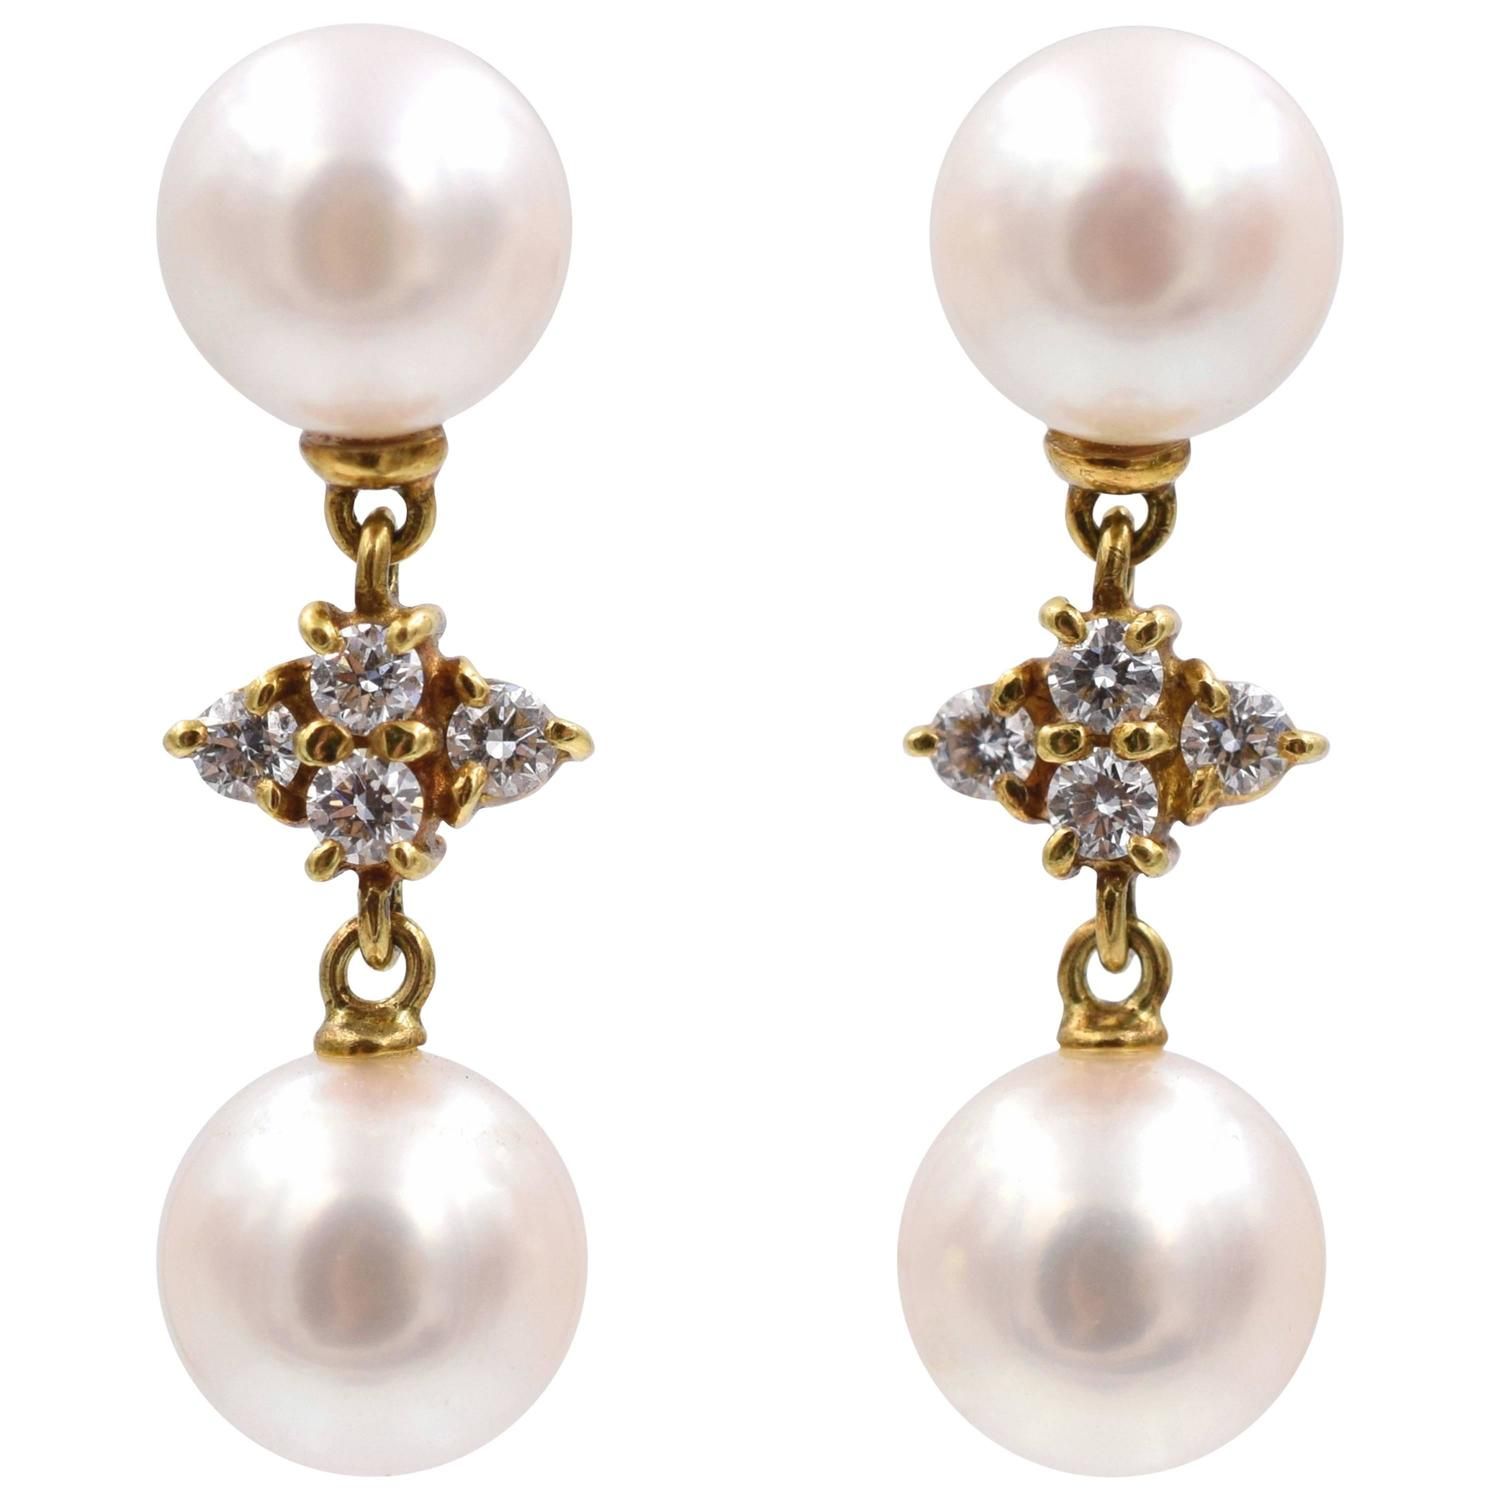 Mikimoto Pearl and Diamond Drop Earrings For Sale at 1stdibs